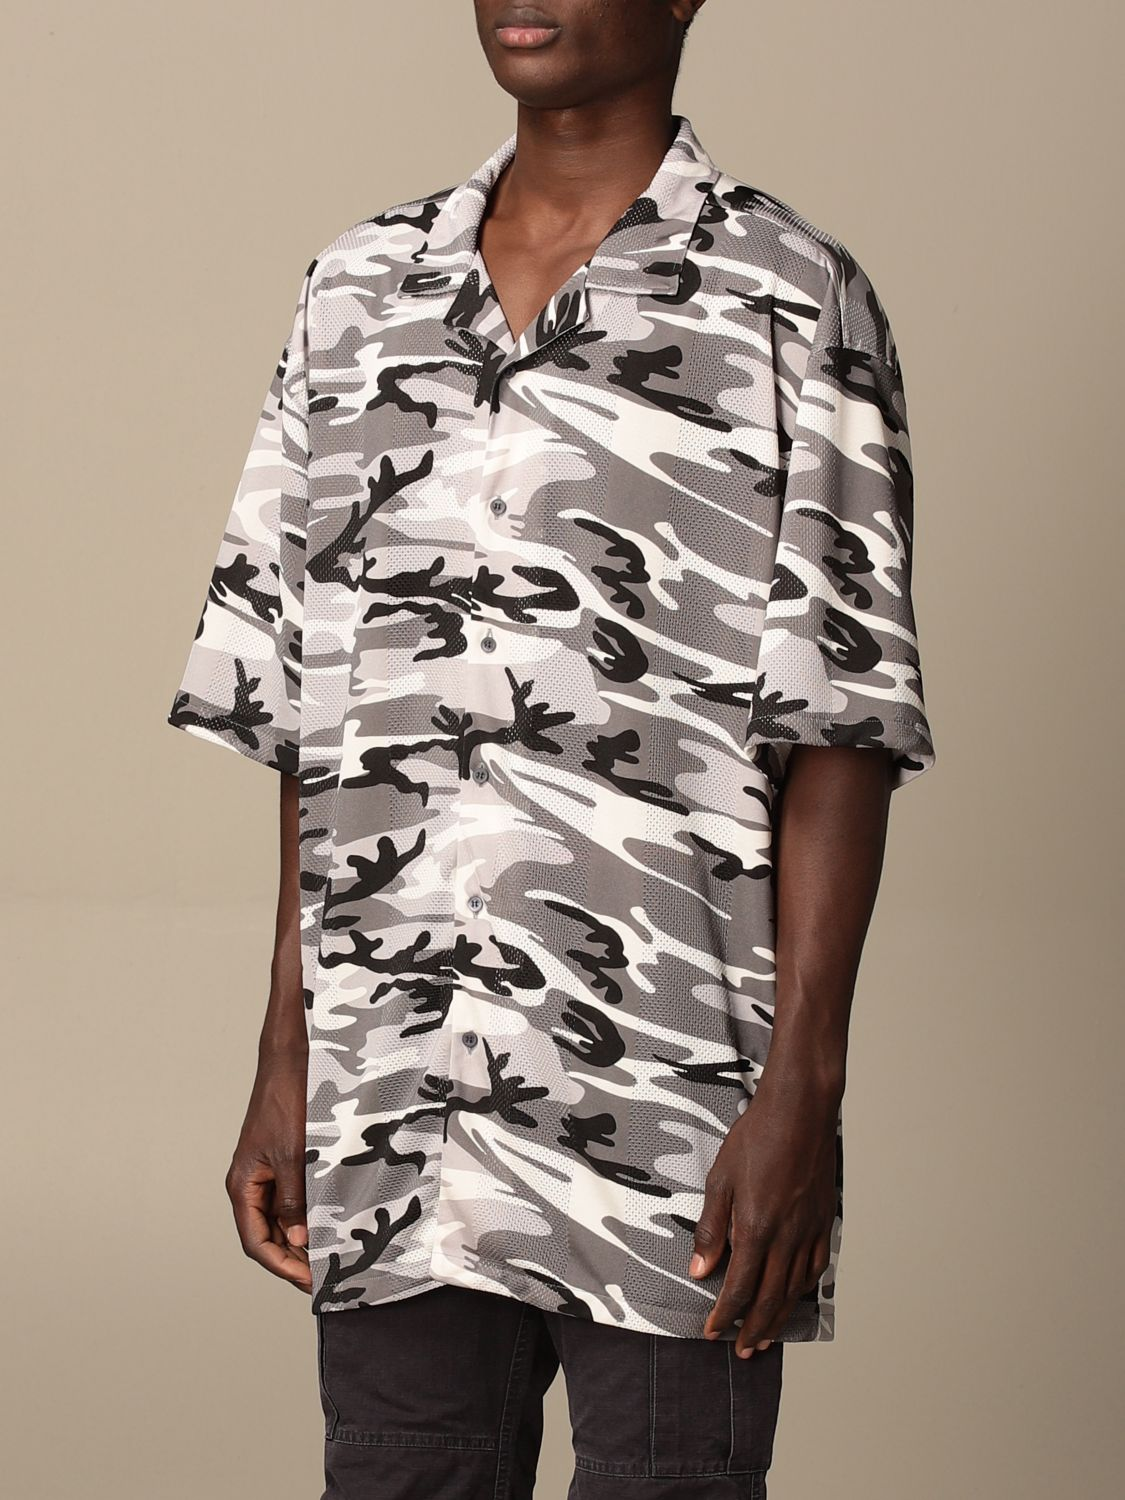 Shirt Balenciaga: Over Balenciaga shirt with camouflage pattern grey 4